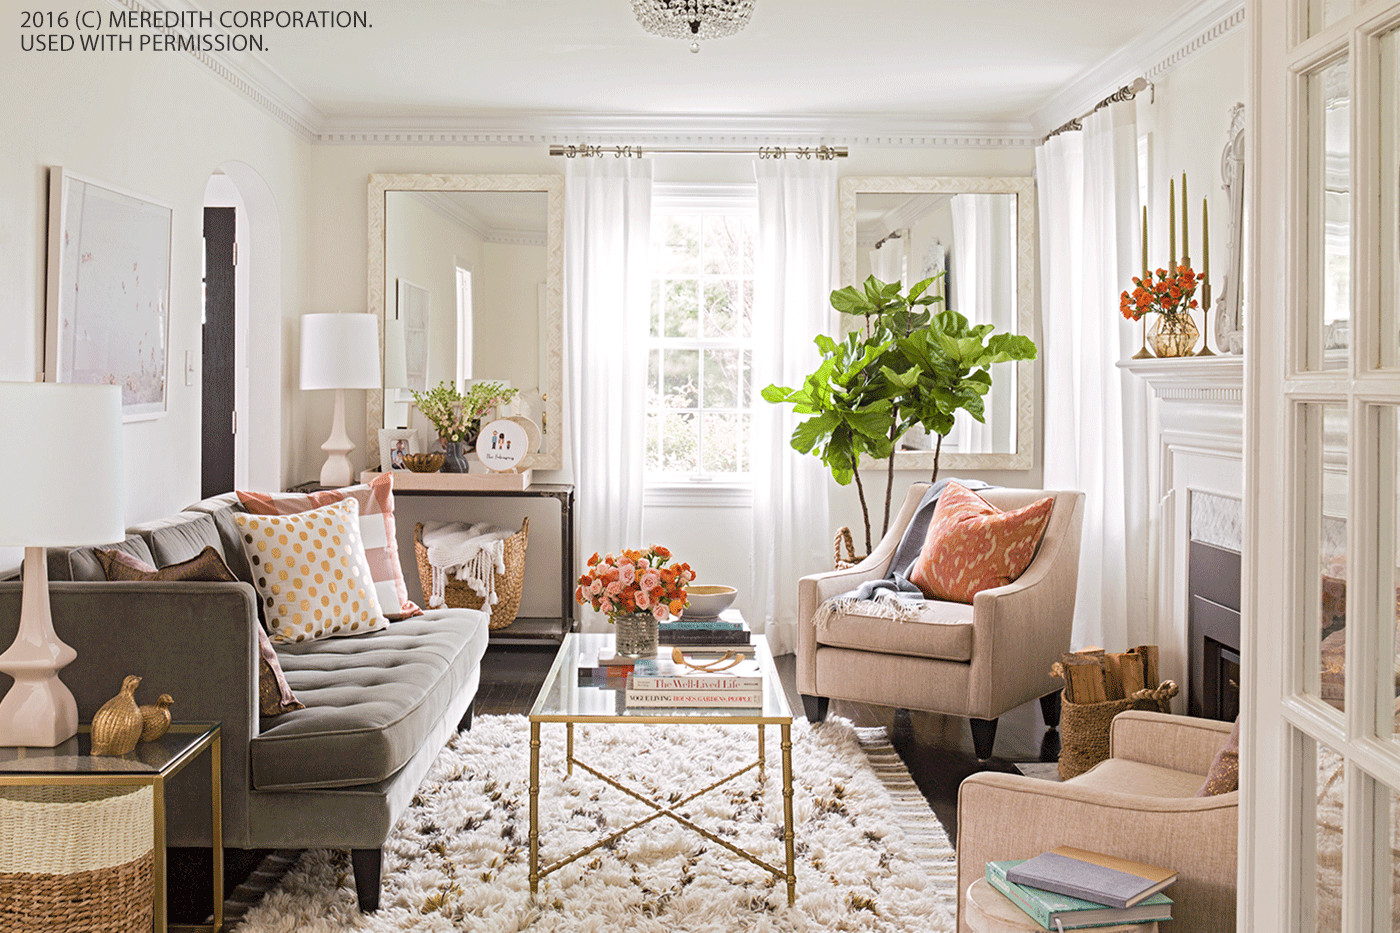 Small Living Room Decor Ideas  Living Room Solutions How to Design Small Spaces With Style